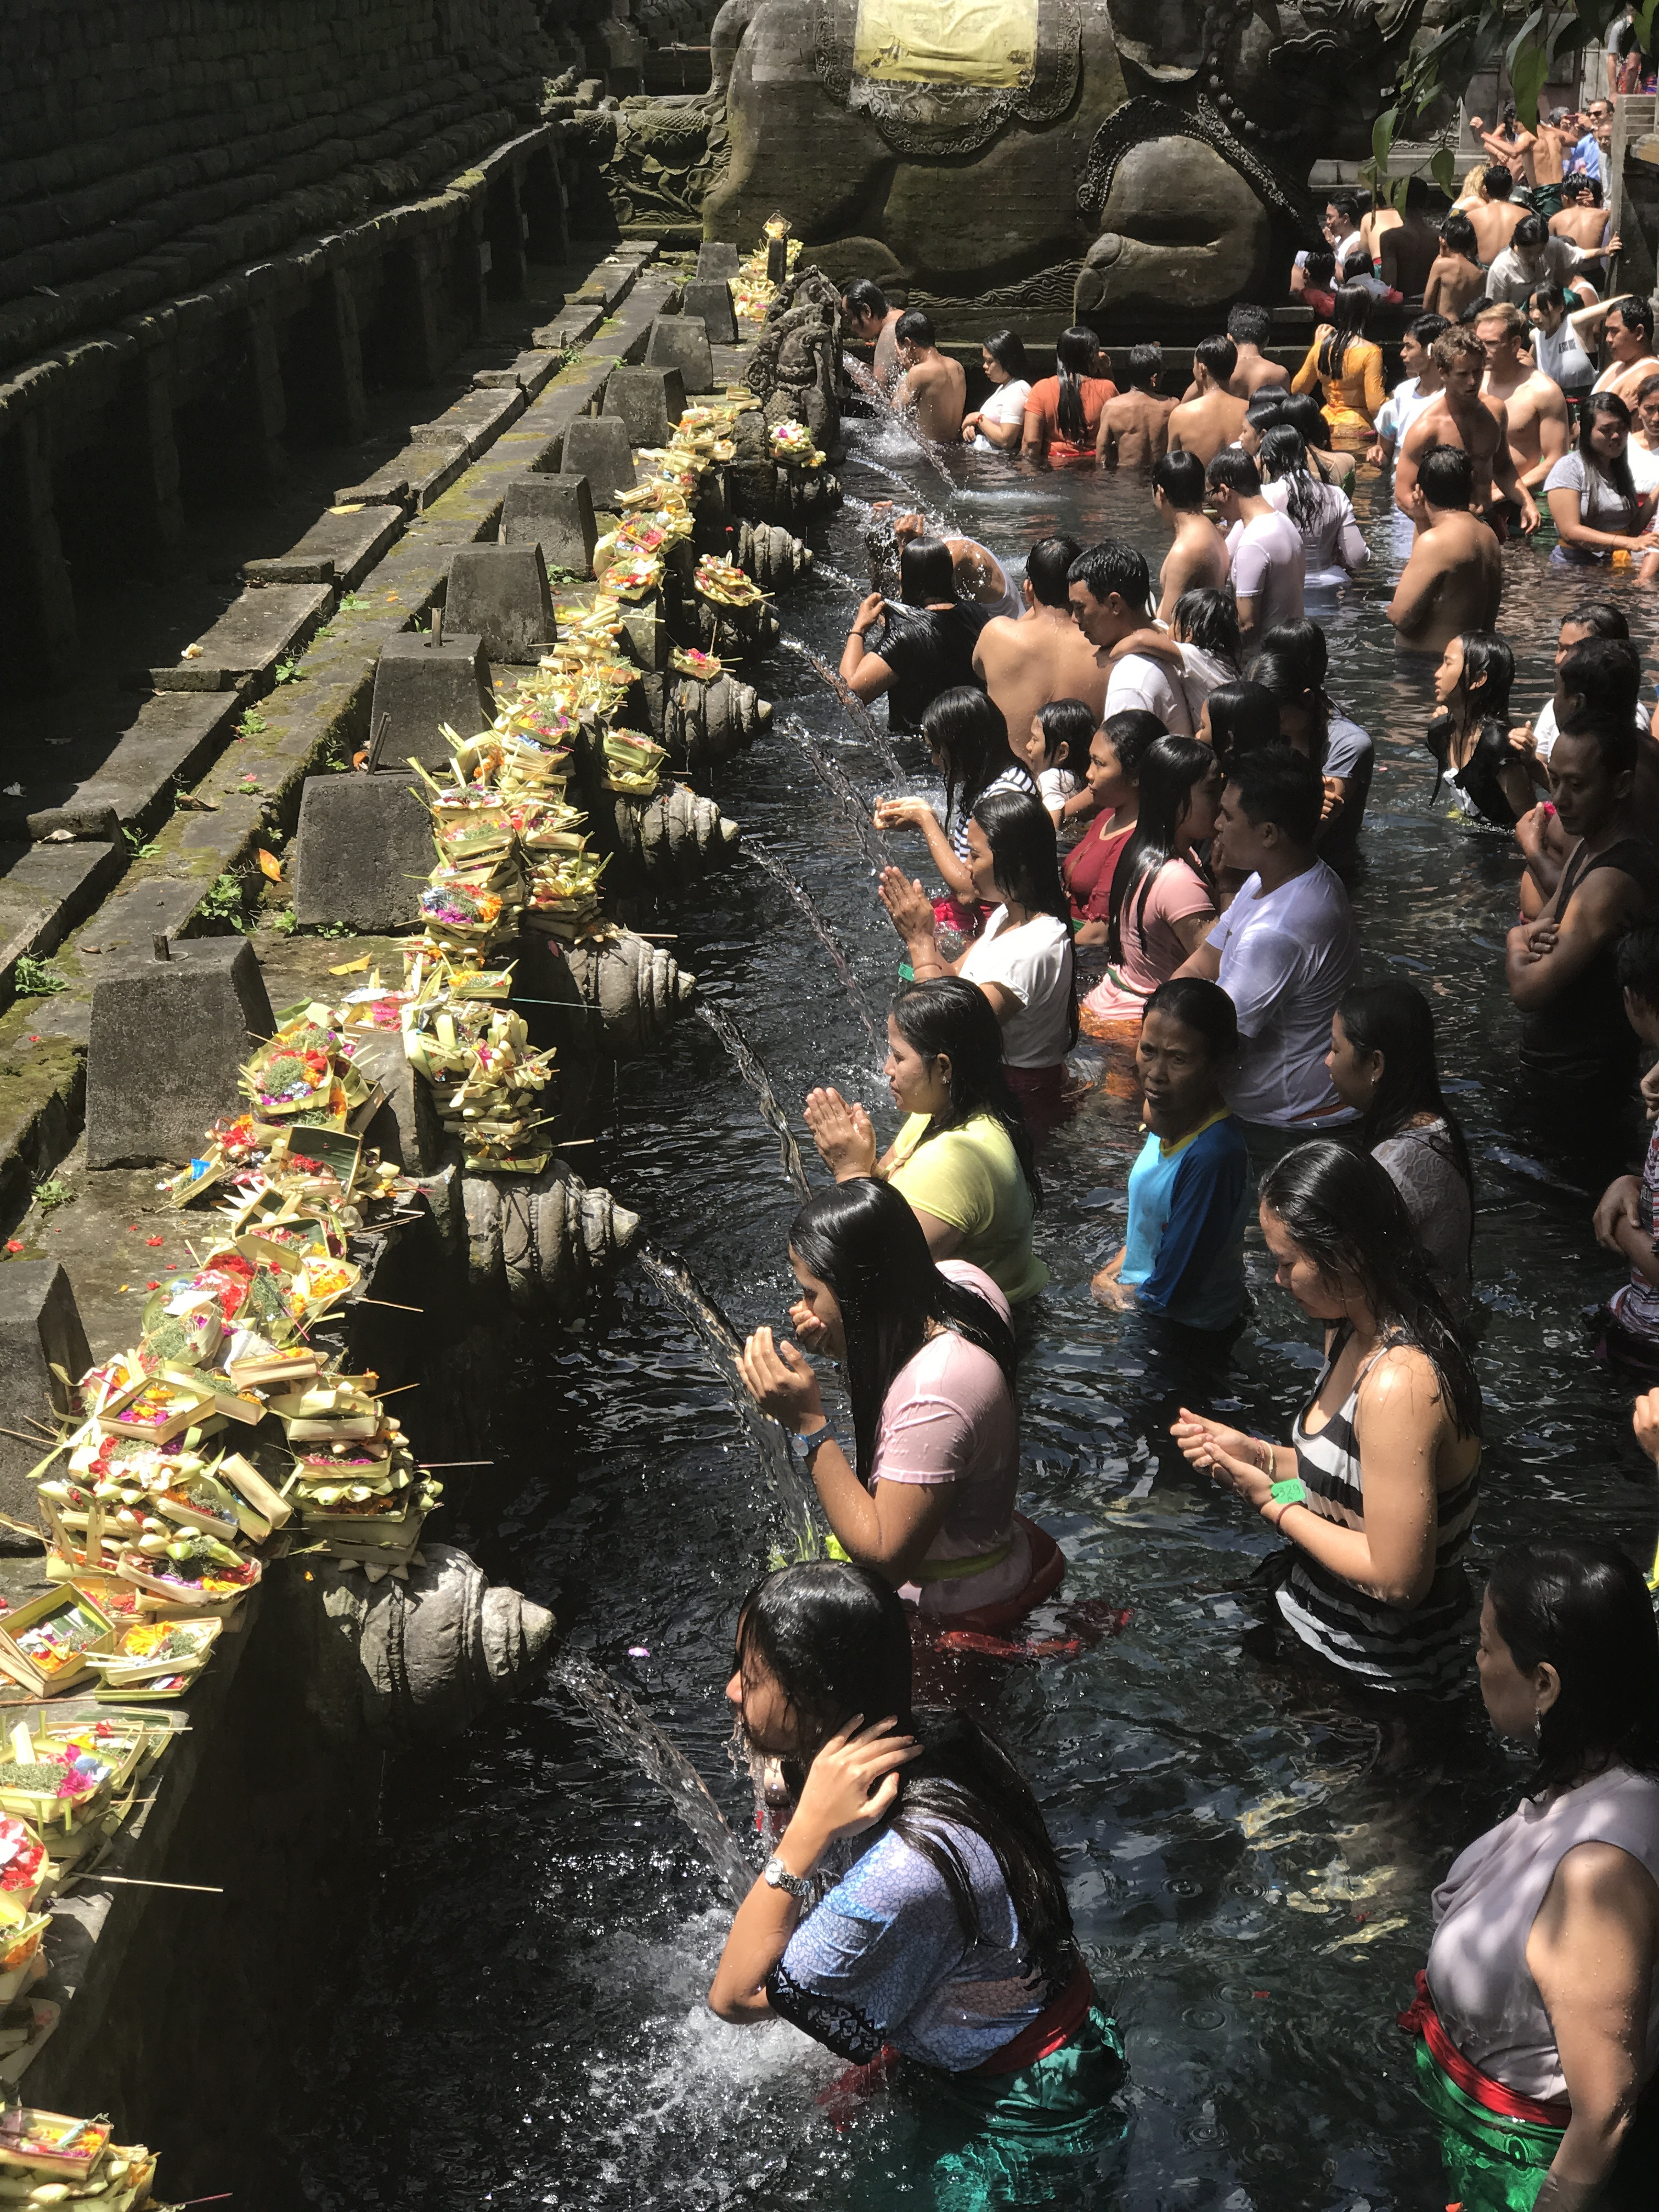 Tirta Empul Temple - Ubud, Bali, Indonesia - Our Bali Trip - 12 Things You Can't Miss In Ubud Bali - Ubud Bali - Ubud Monkey Forest - Ubud Travel Blog - Ubud Bali Hotels - What To Do In Ubud - #ubud #bali #travelblog